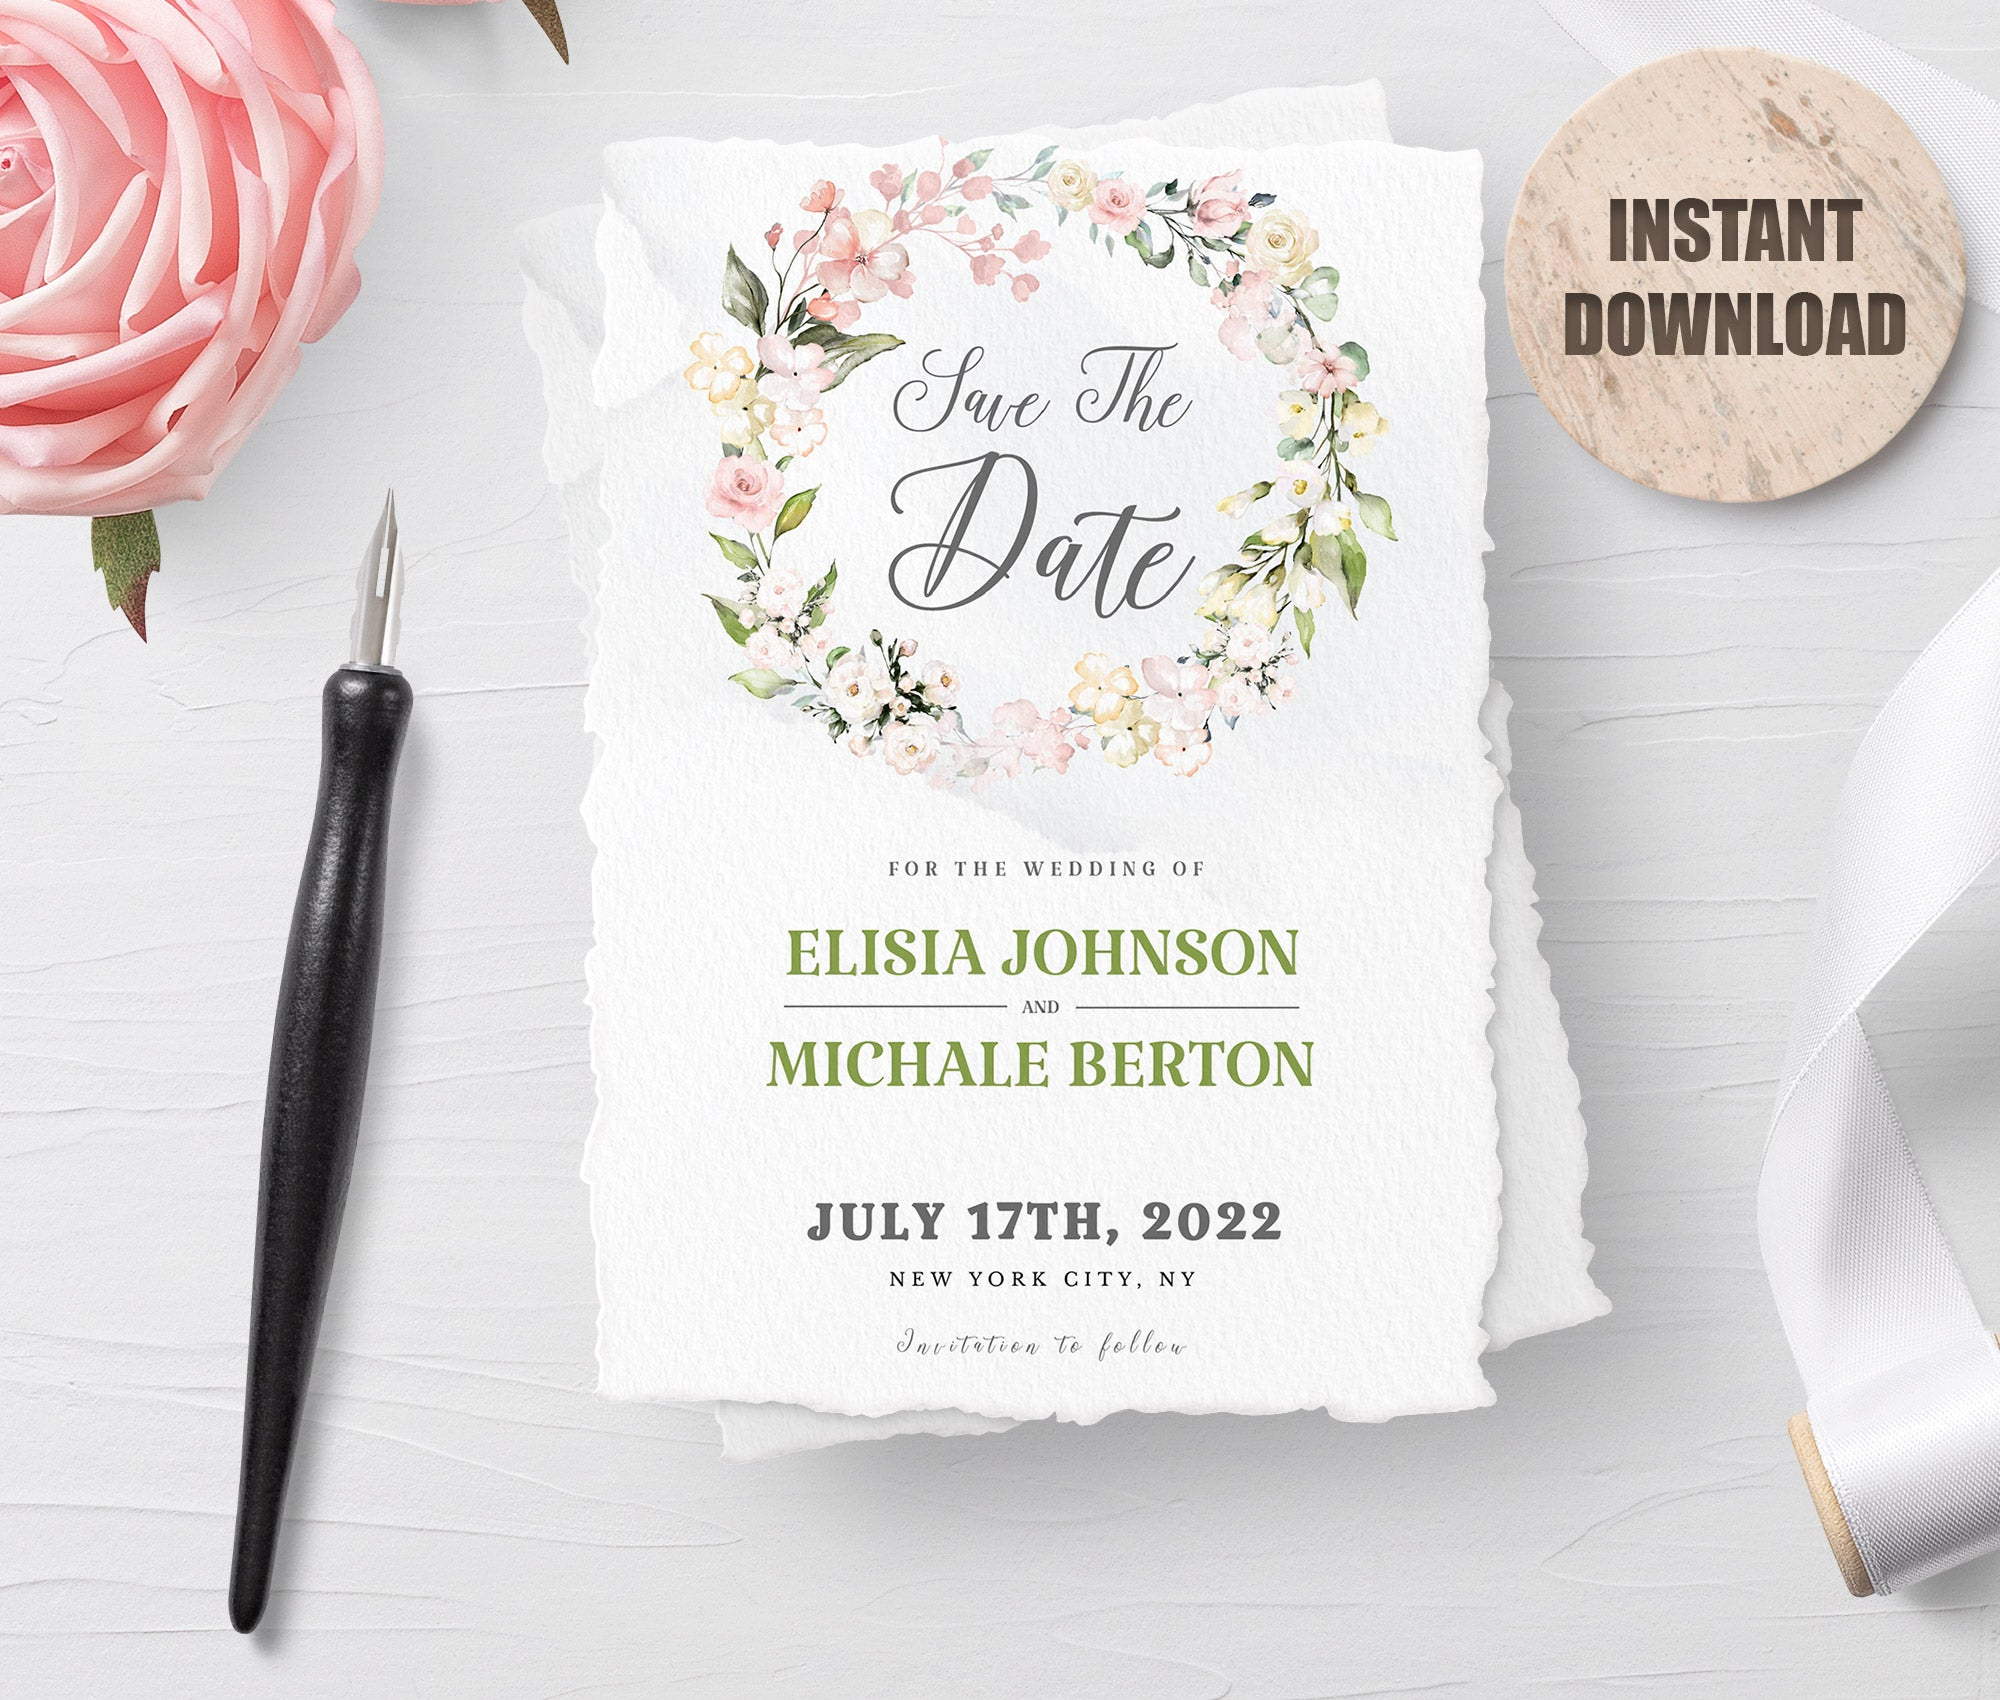 LOVAL Printable Save the Date Card set 8